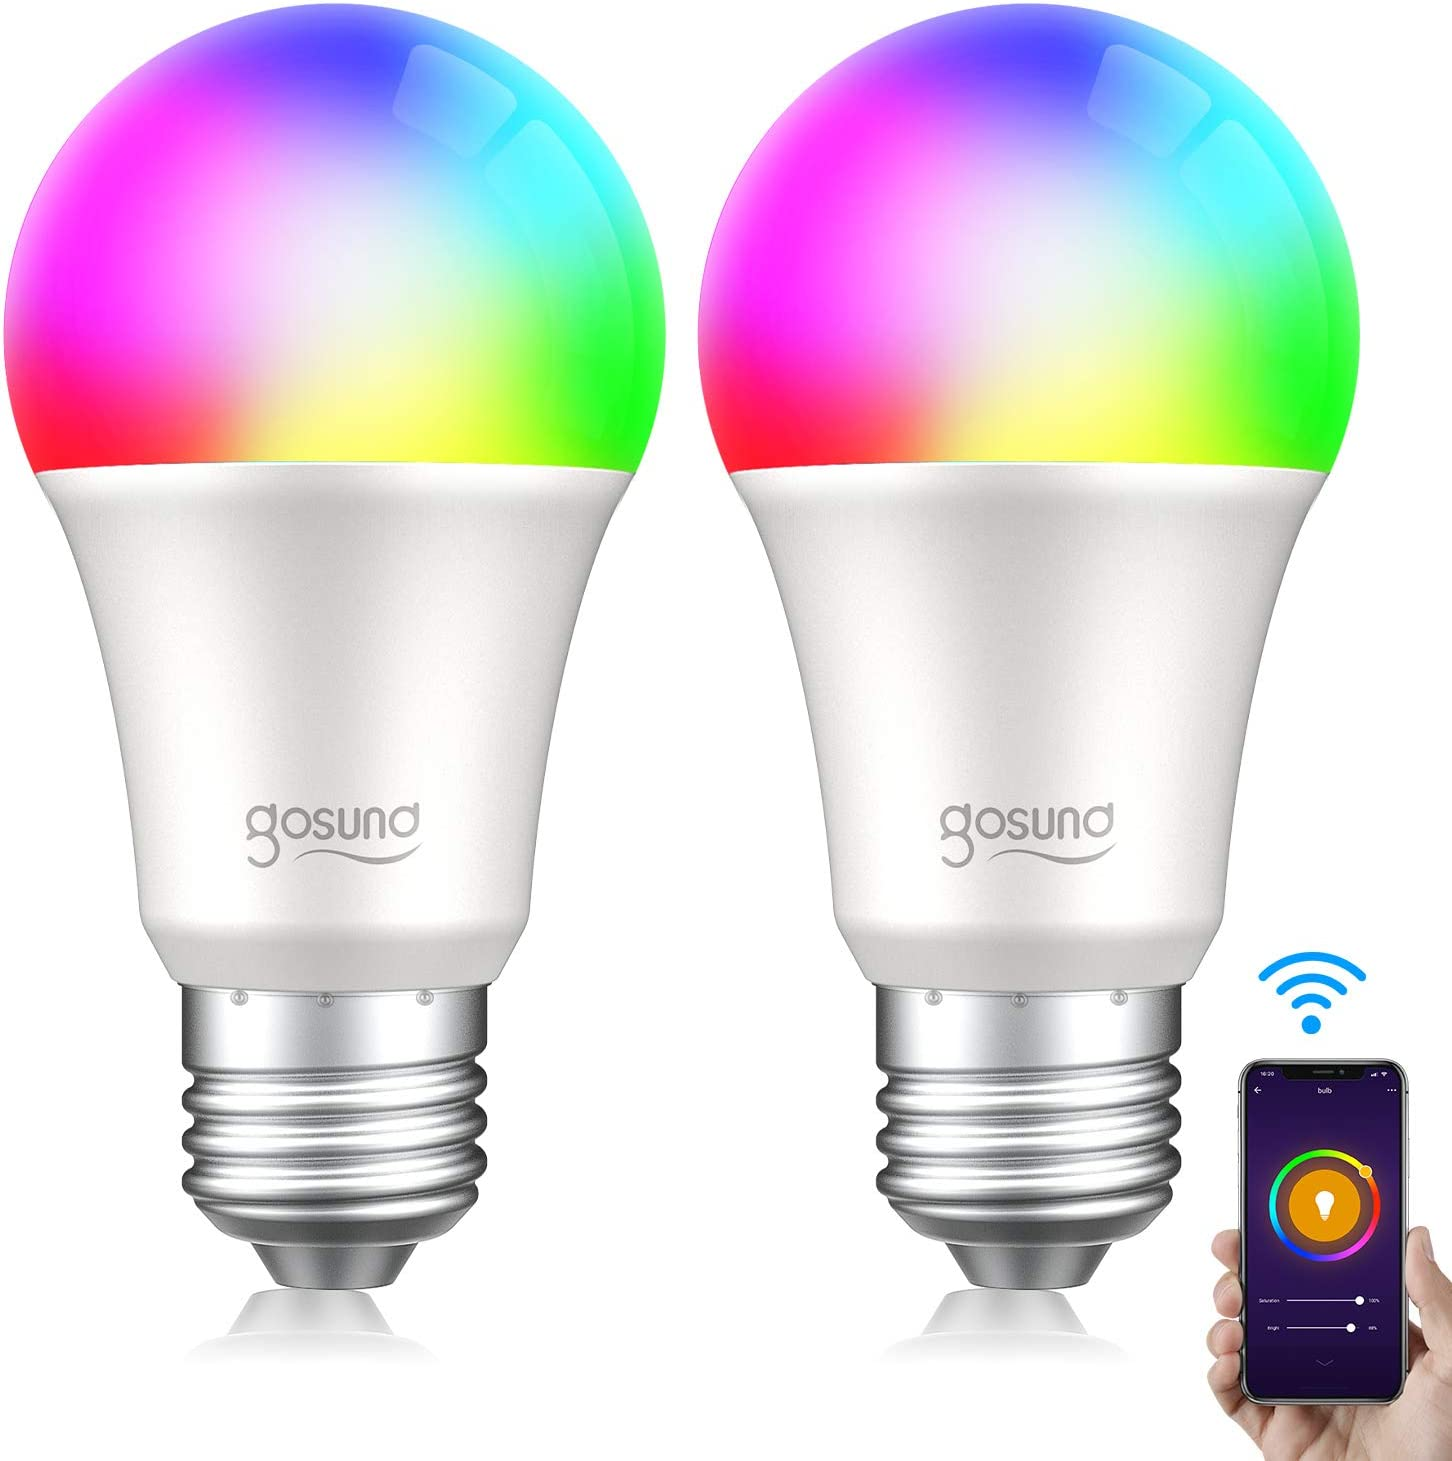 Gosund Bombilla LED Inteligente WiFi, Luces Cálida/Frias de RGB, Lámpara Regulable Compatible con Alexa/Google Home, Smart Light Led E27 8W 800LM, 16 Millones y Brillo Ajustable, 2pcs